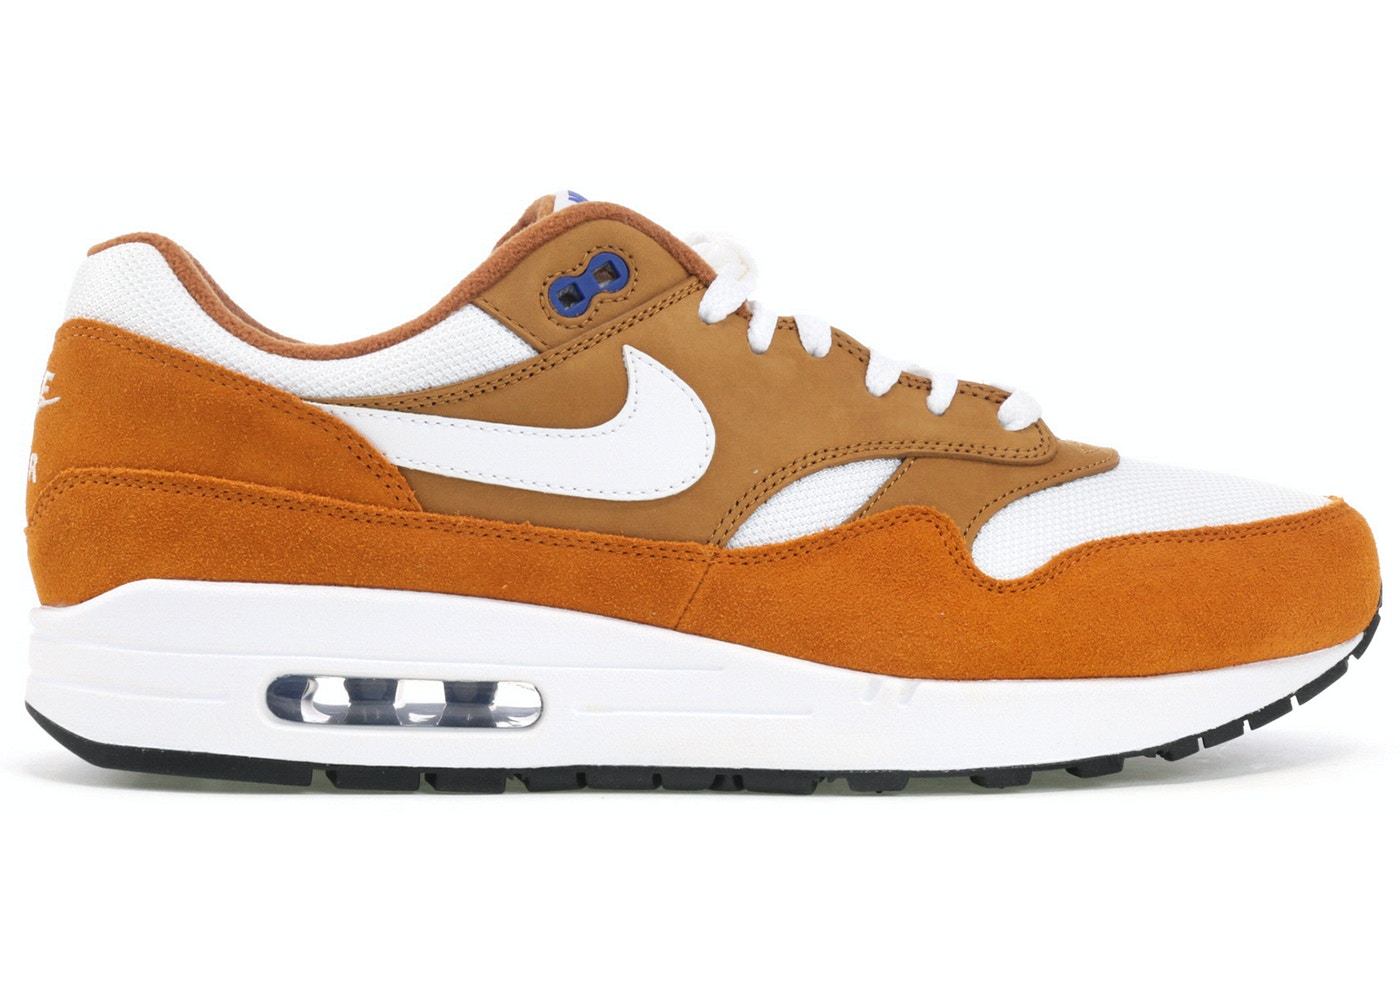 new style ccd14 173fa Buy Nike Air Max 1 Shoes   Deadstock Sneakers